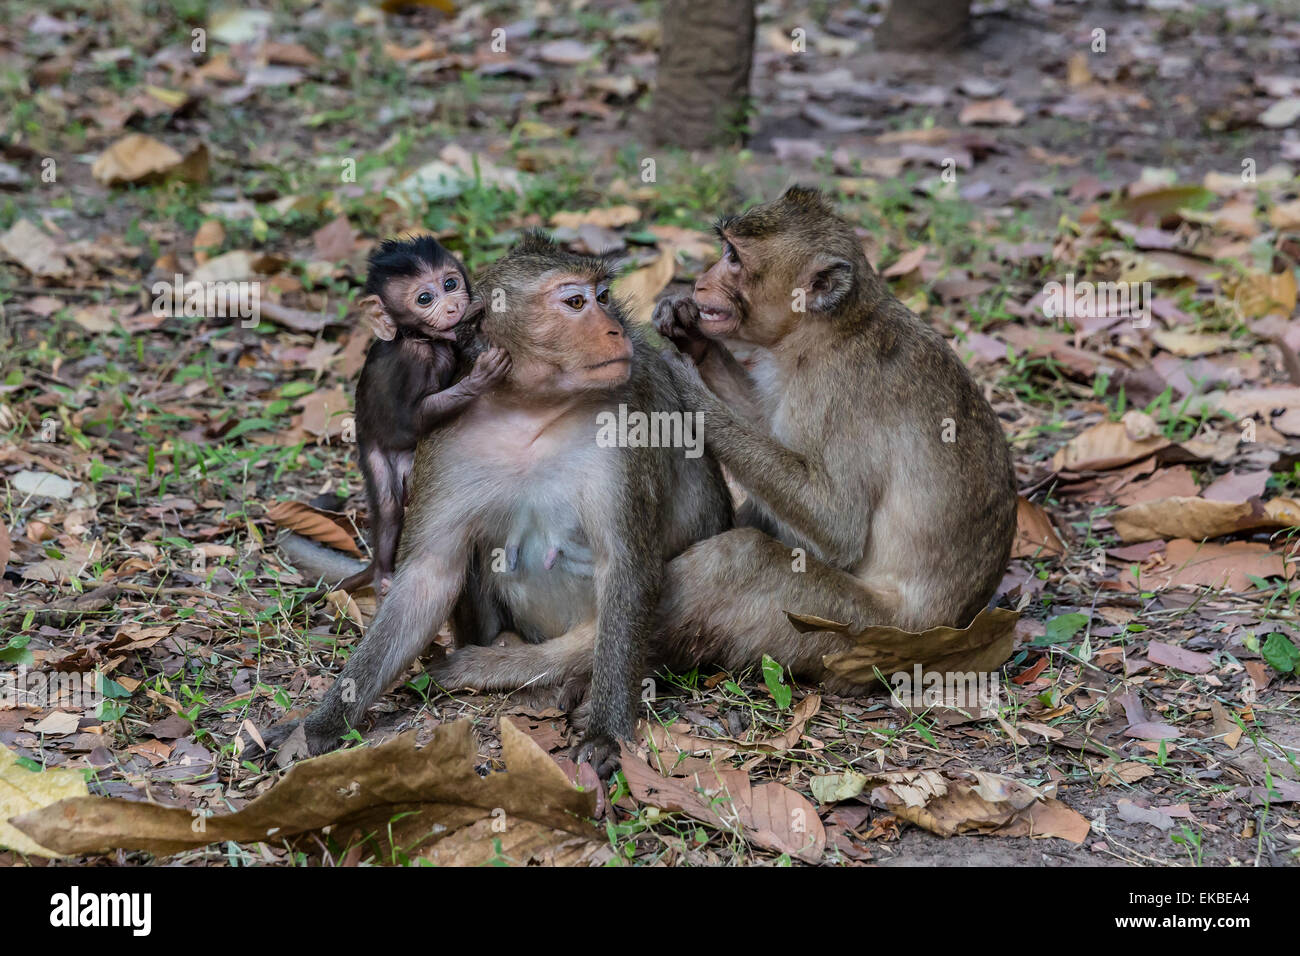 Long-tailed macaques (Macaca fascicularis) grooming near Angkor Thom, Siem Reap, Cambodia, Indochina, Southeast - Stock Image